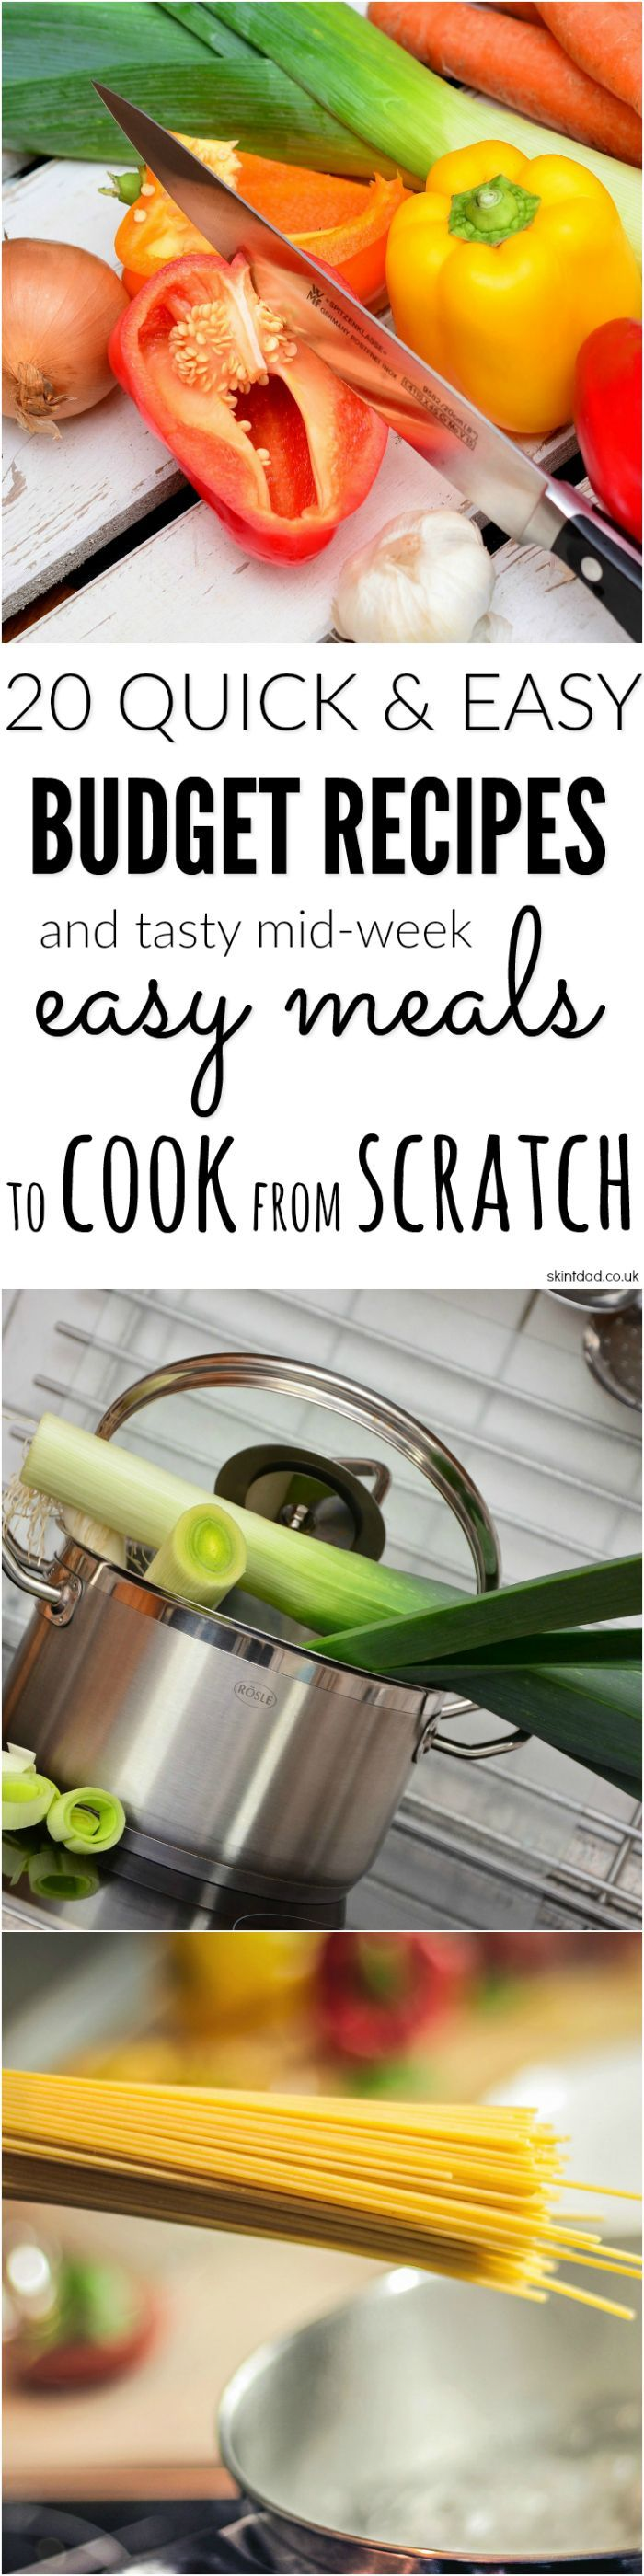 Instead of turning to a jar when cooking, check out these budget recipes which are easy to cook, purse friendly and can be made from scratch in no time.